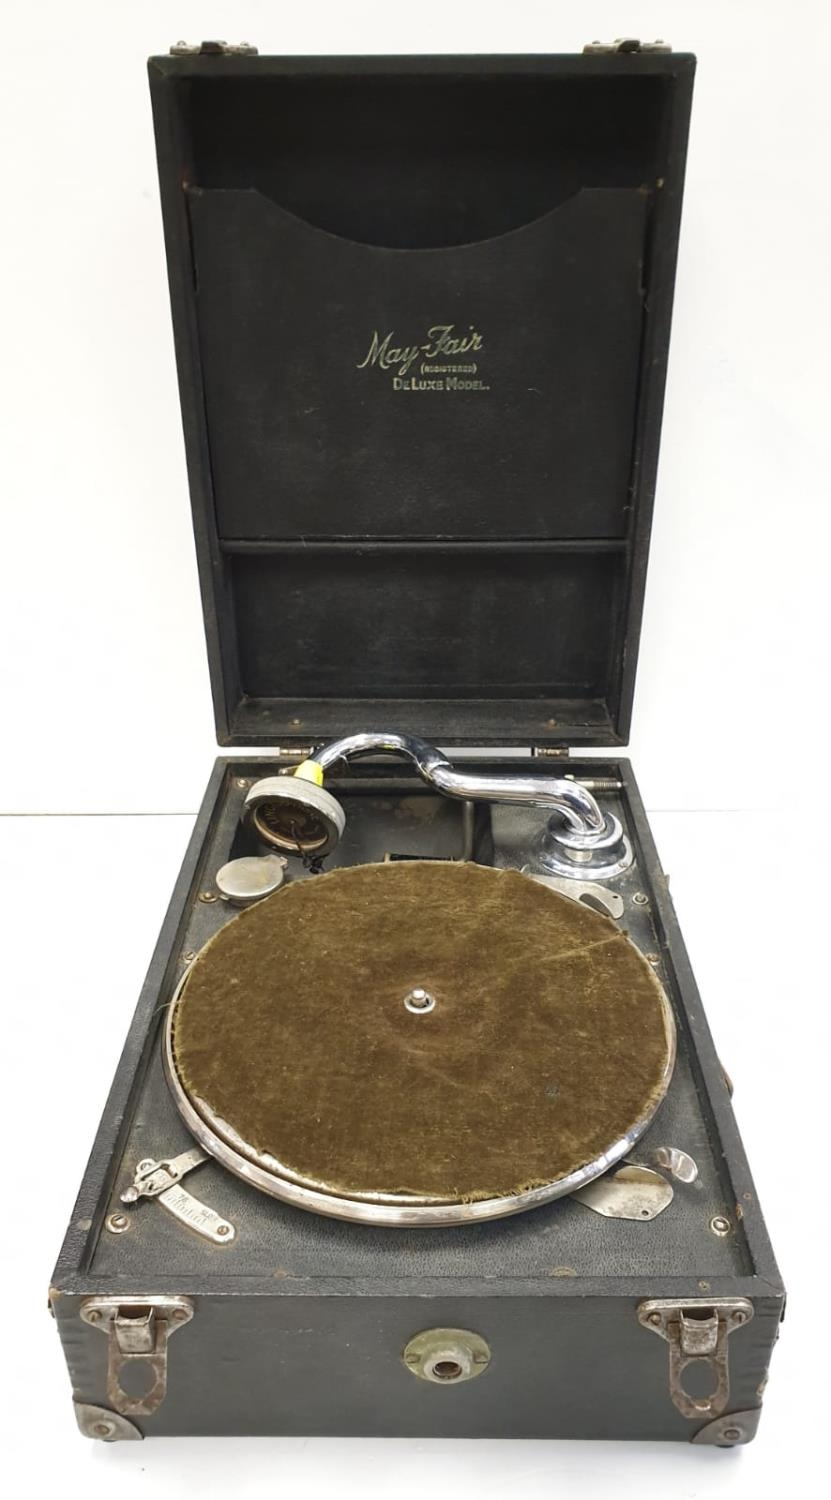 Vintage 1940's May-Fair Deluxe Wind-up Portable record player with 40 LP's. Full working order. Good - Image 2 of 13